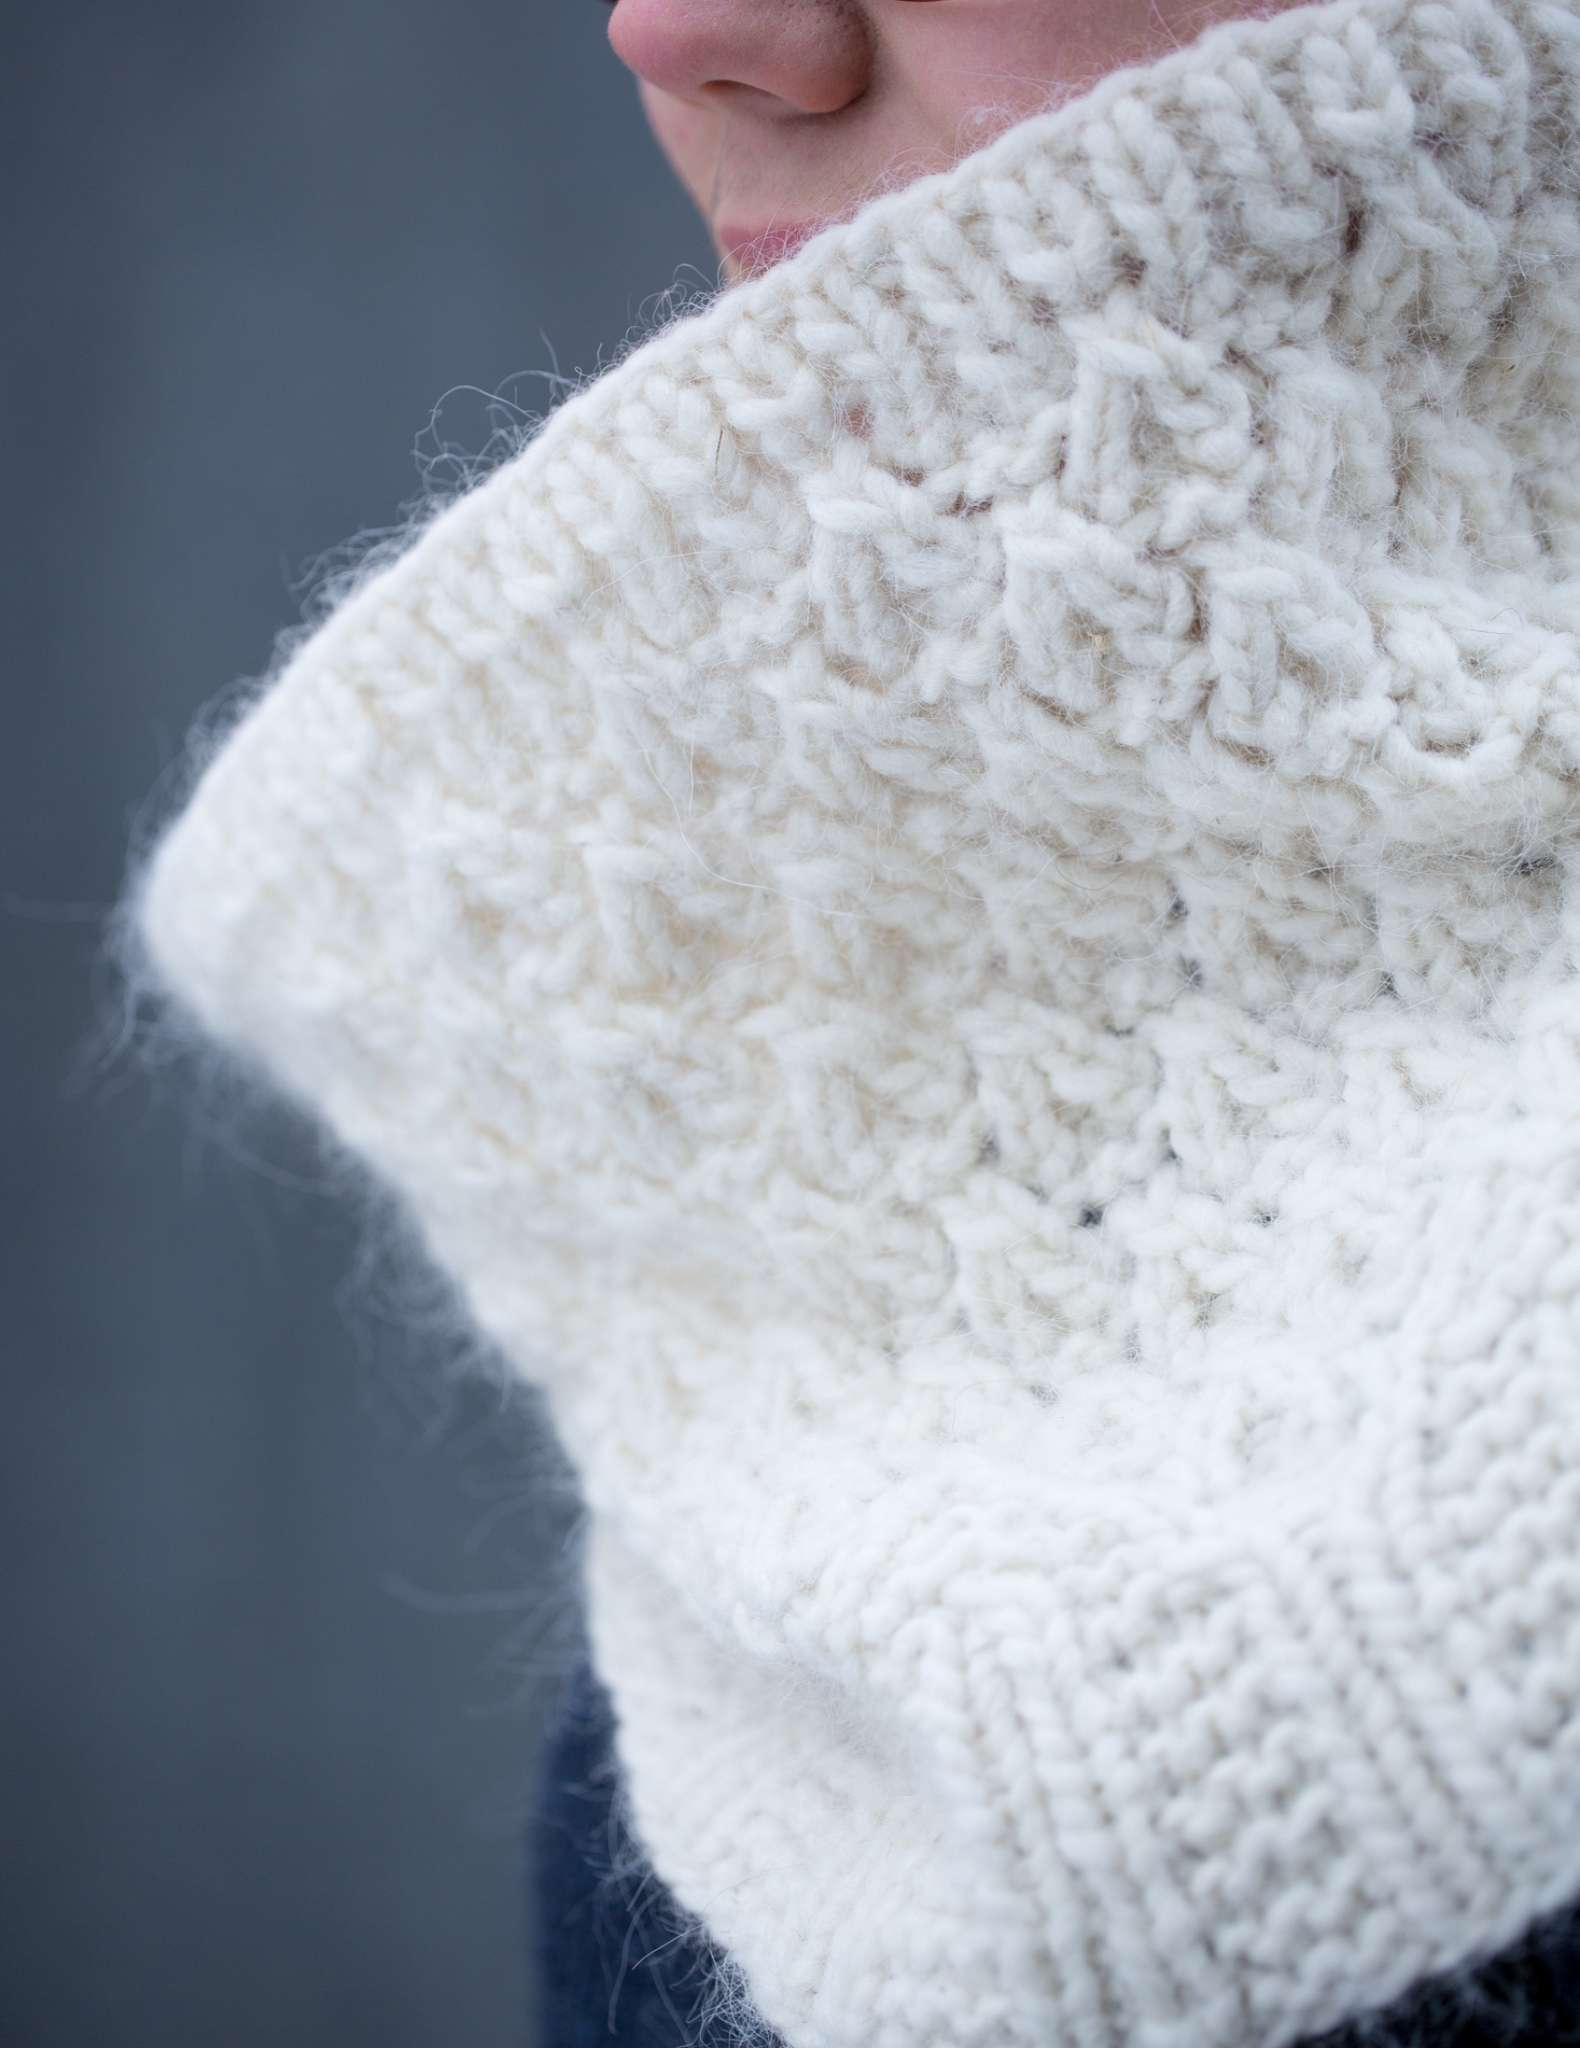 A close up of a white cowl, with only wearers nose slightly visible. The cowl is fluffy and textured.